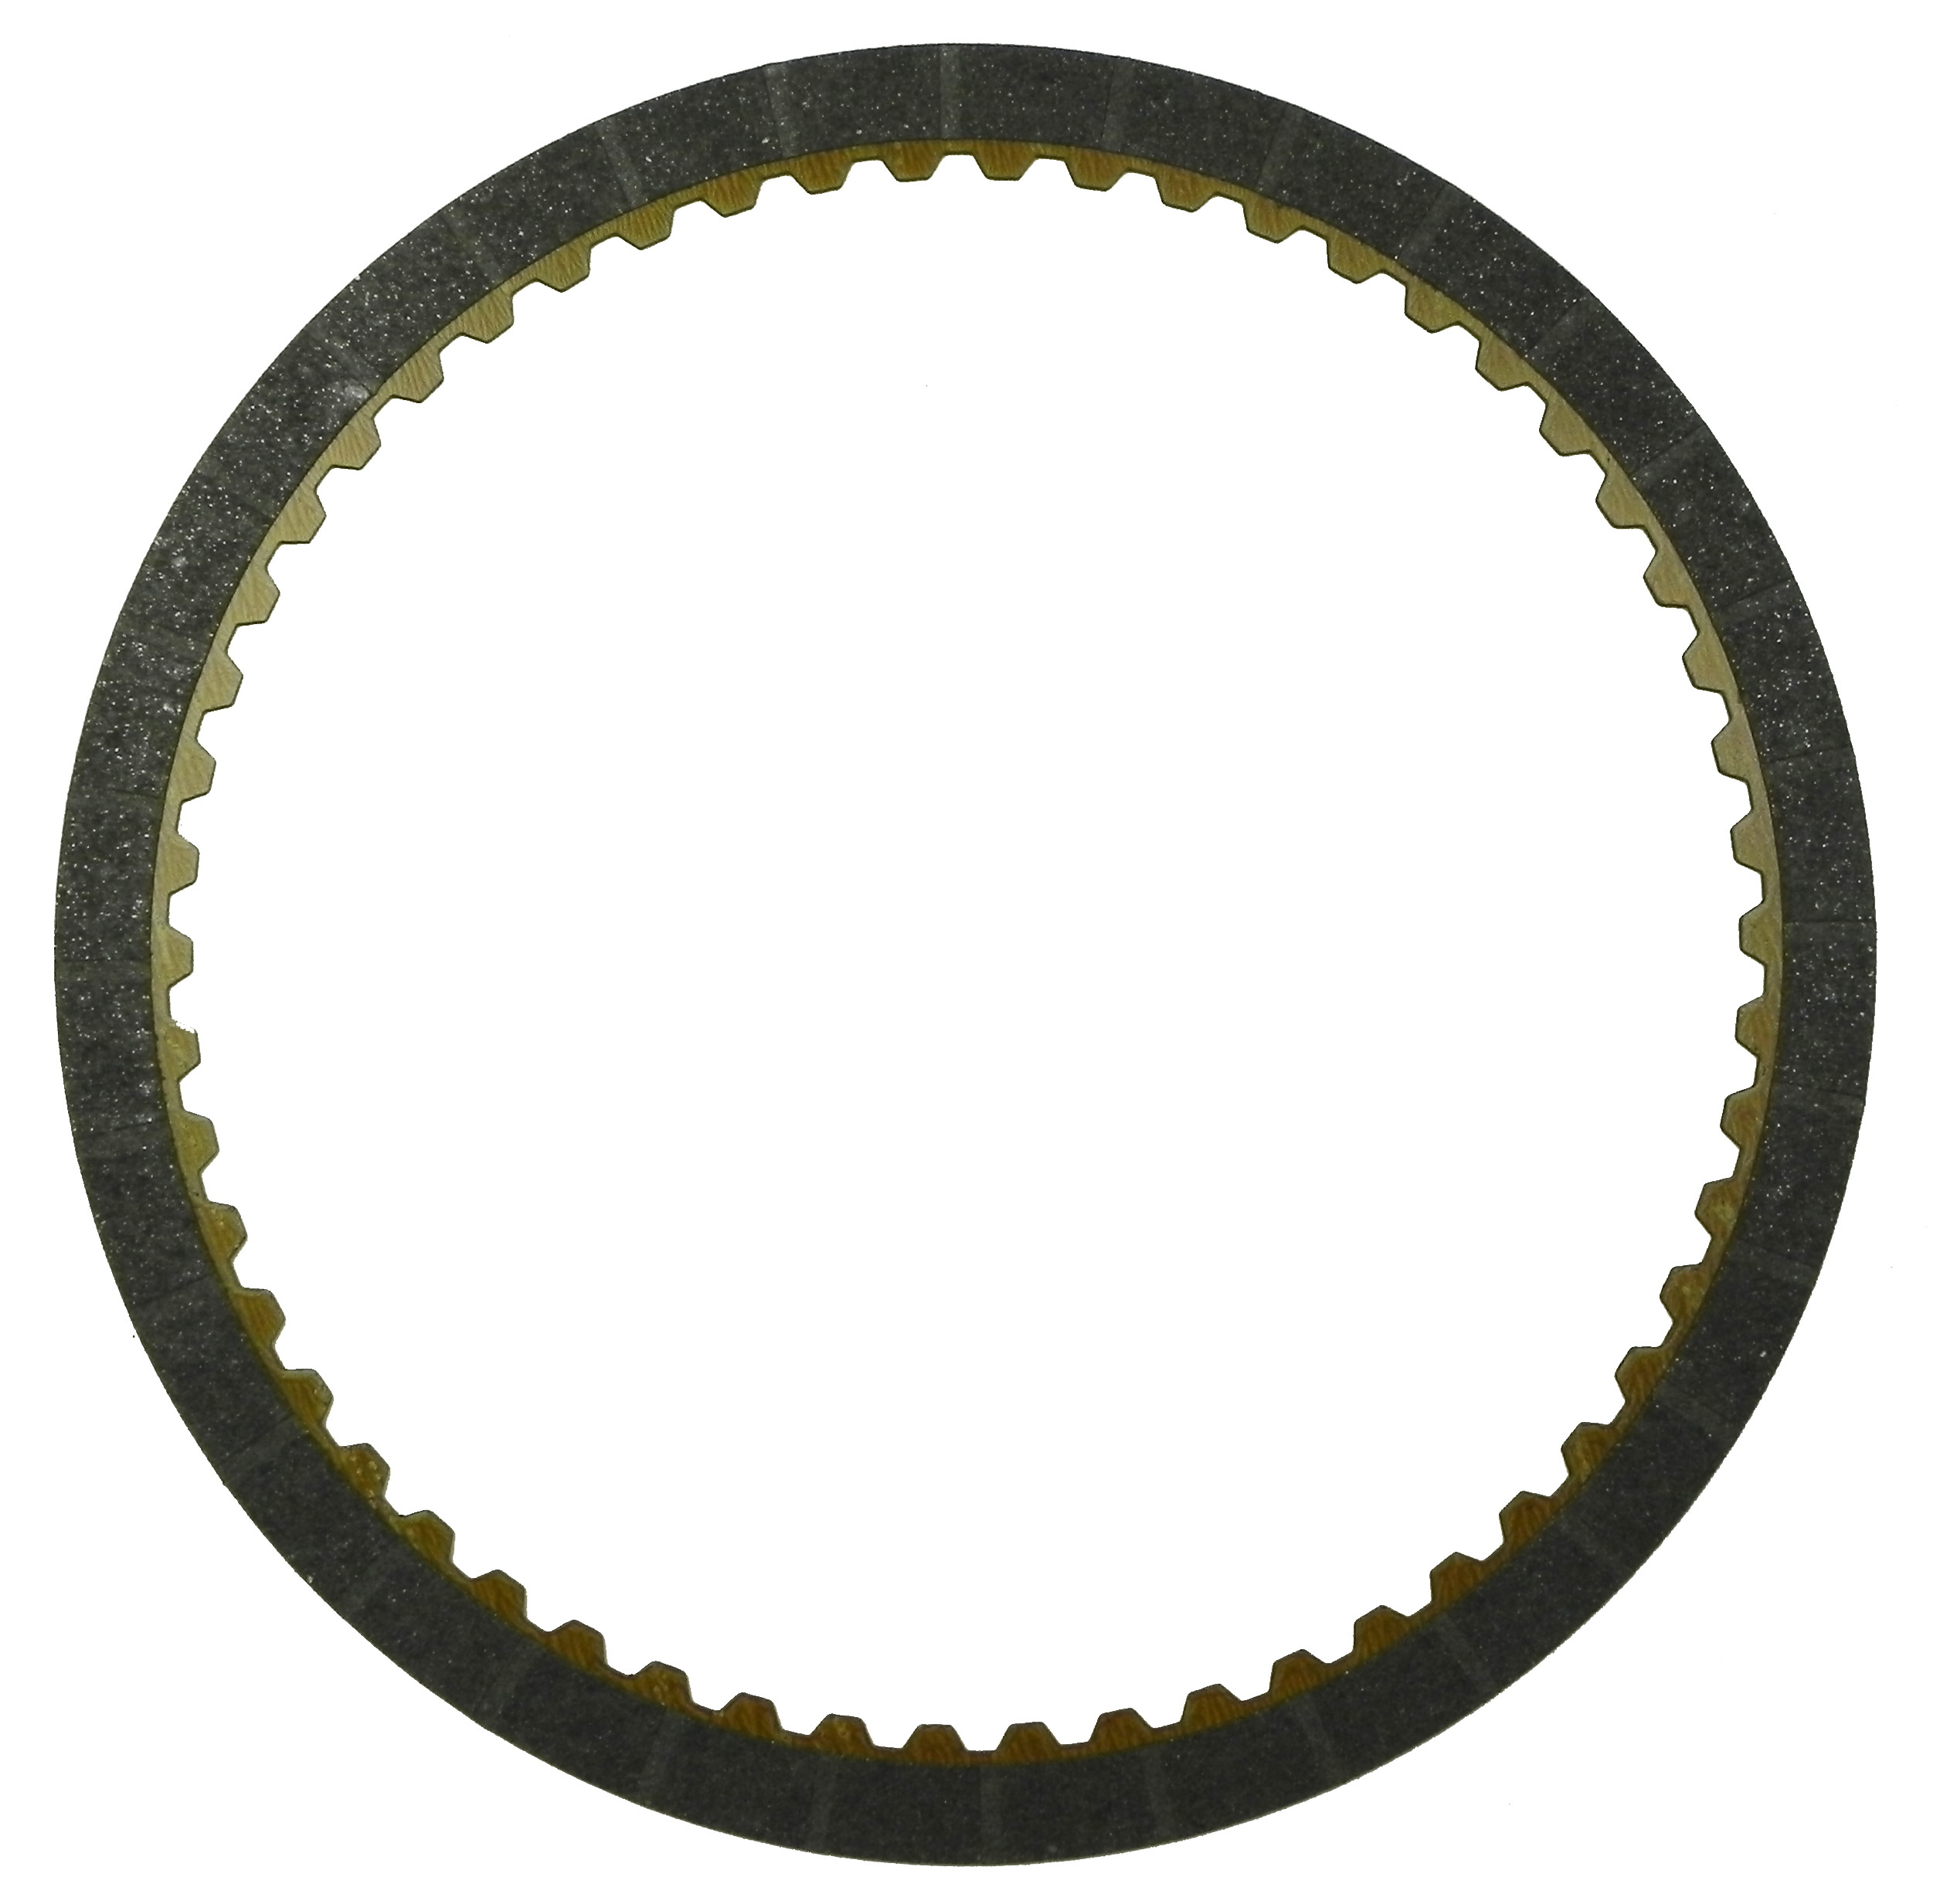 R558525 | 2007-ON Friction Clutch Plate High Energy Low, Reverse High Energy